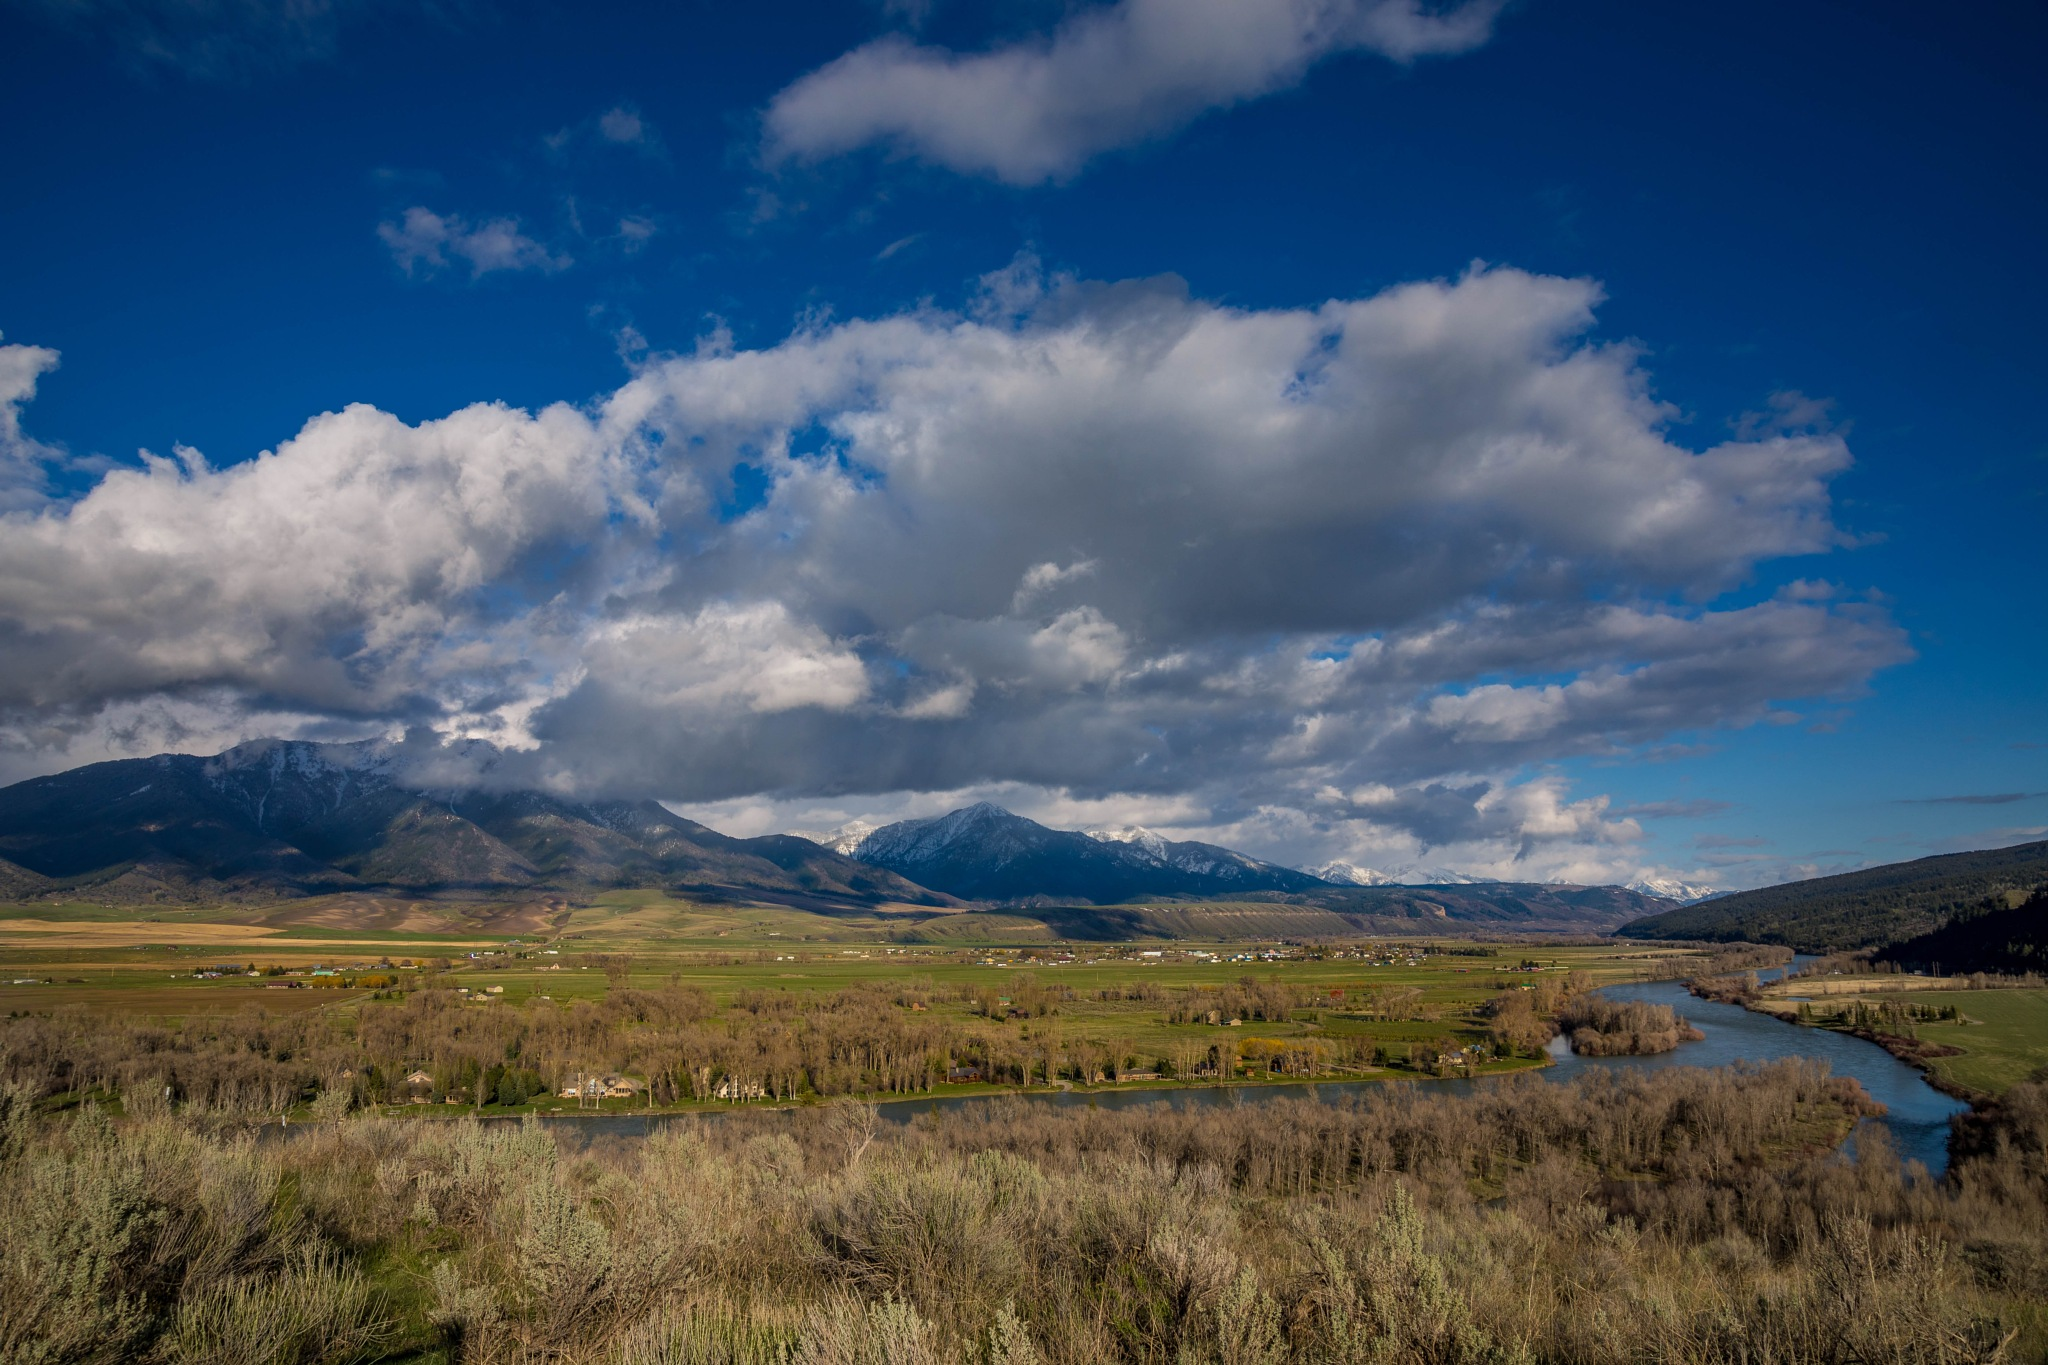 Swan Valley by drchad480